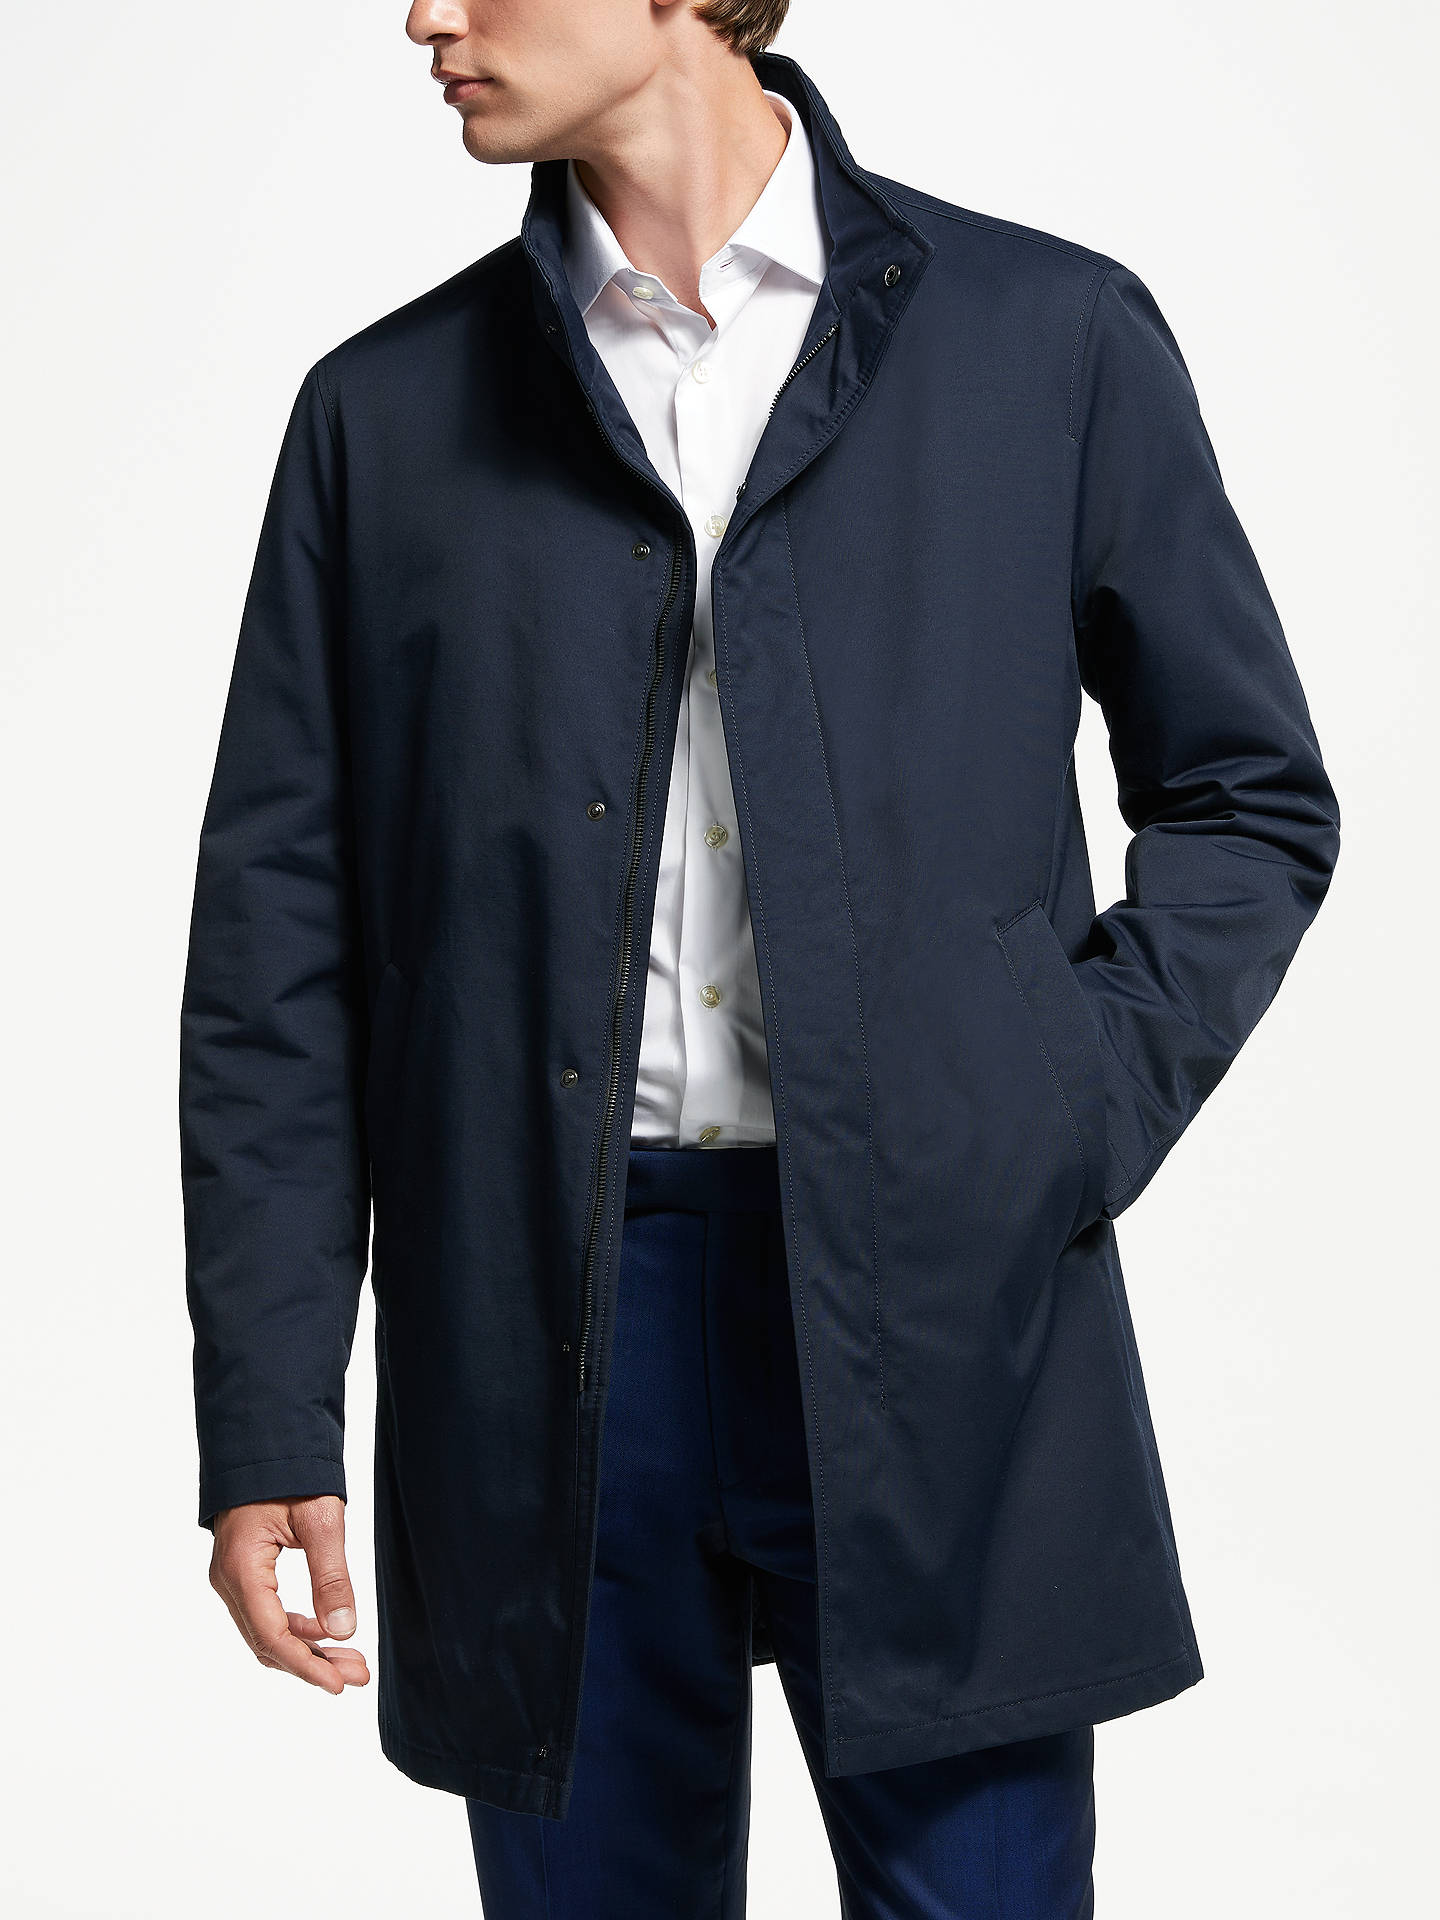 BuyBugatti Water Repellent Funnel Neck Coat, Navy, 44R Online at johnlewis.com